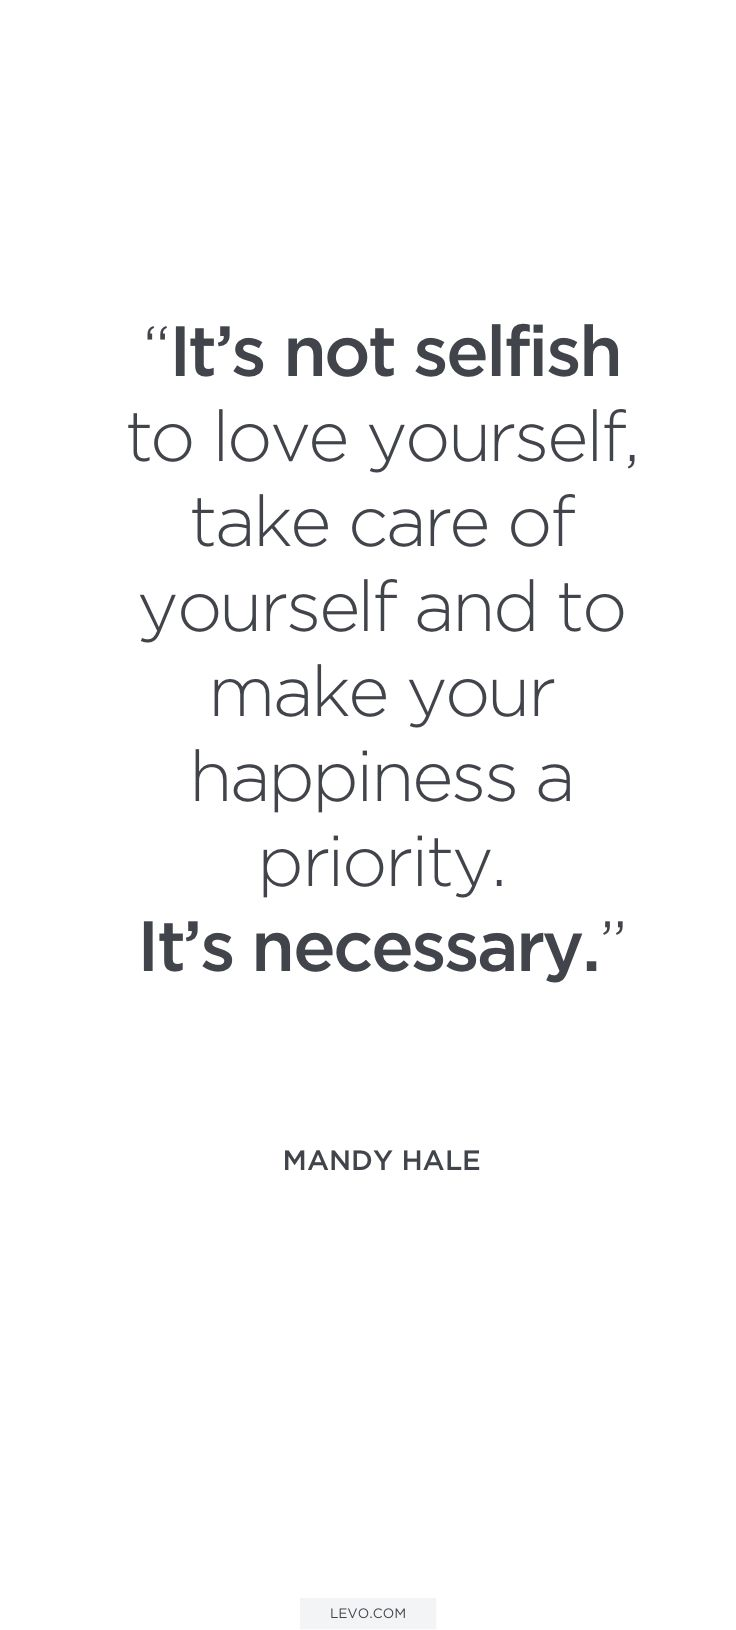 Quotes On Happiness Best 25 Happiness Quotes Ideas On Pinterest  Inspirational Mom